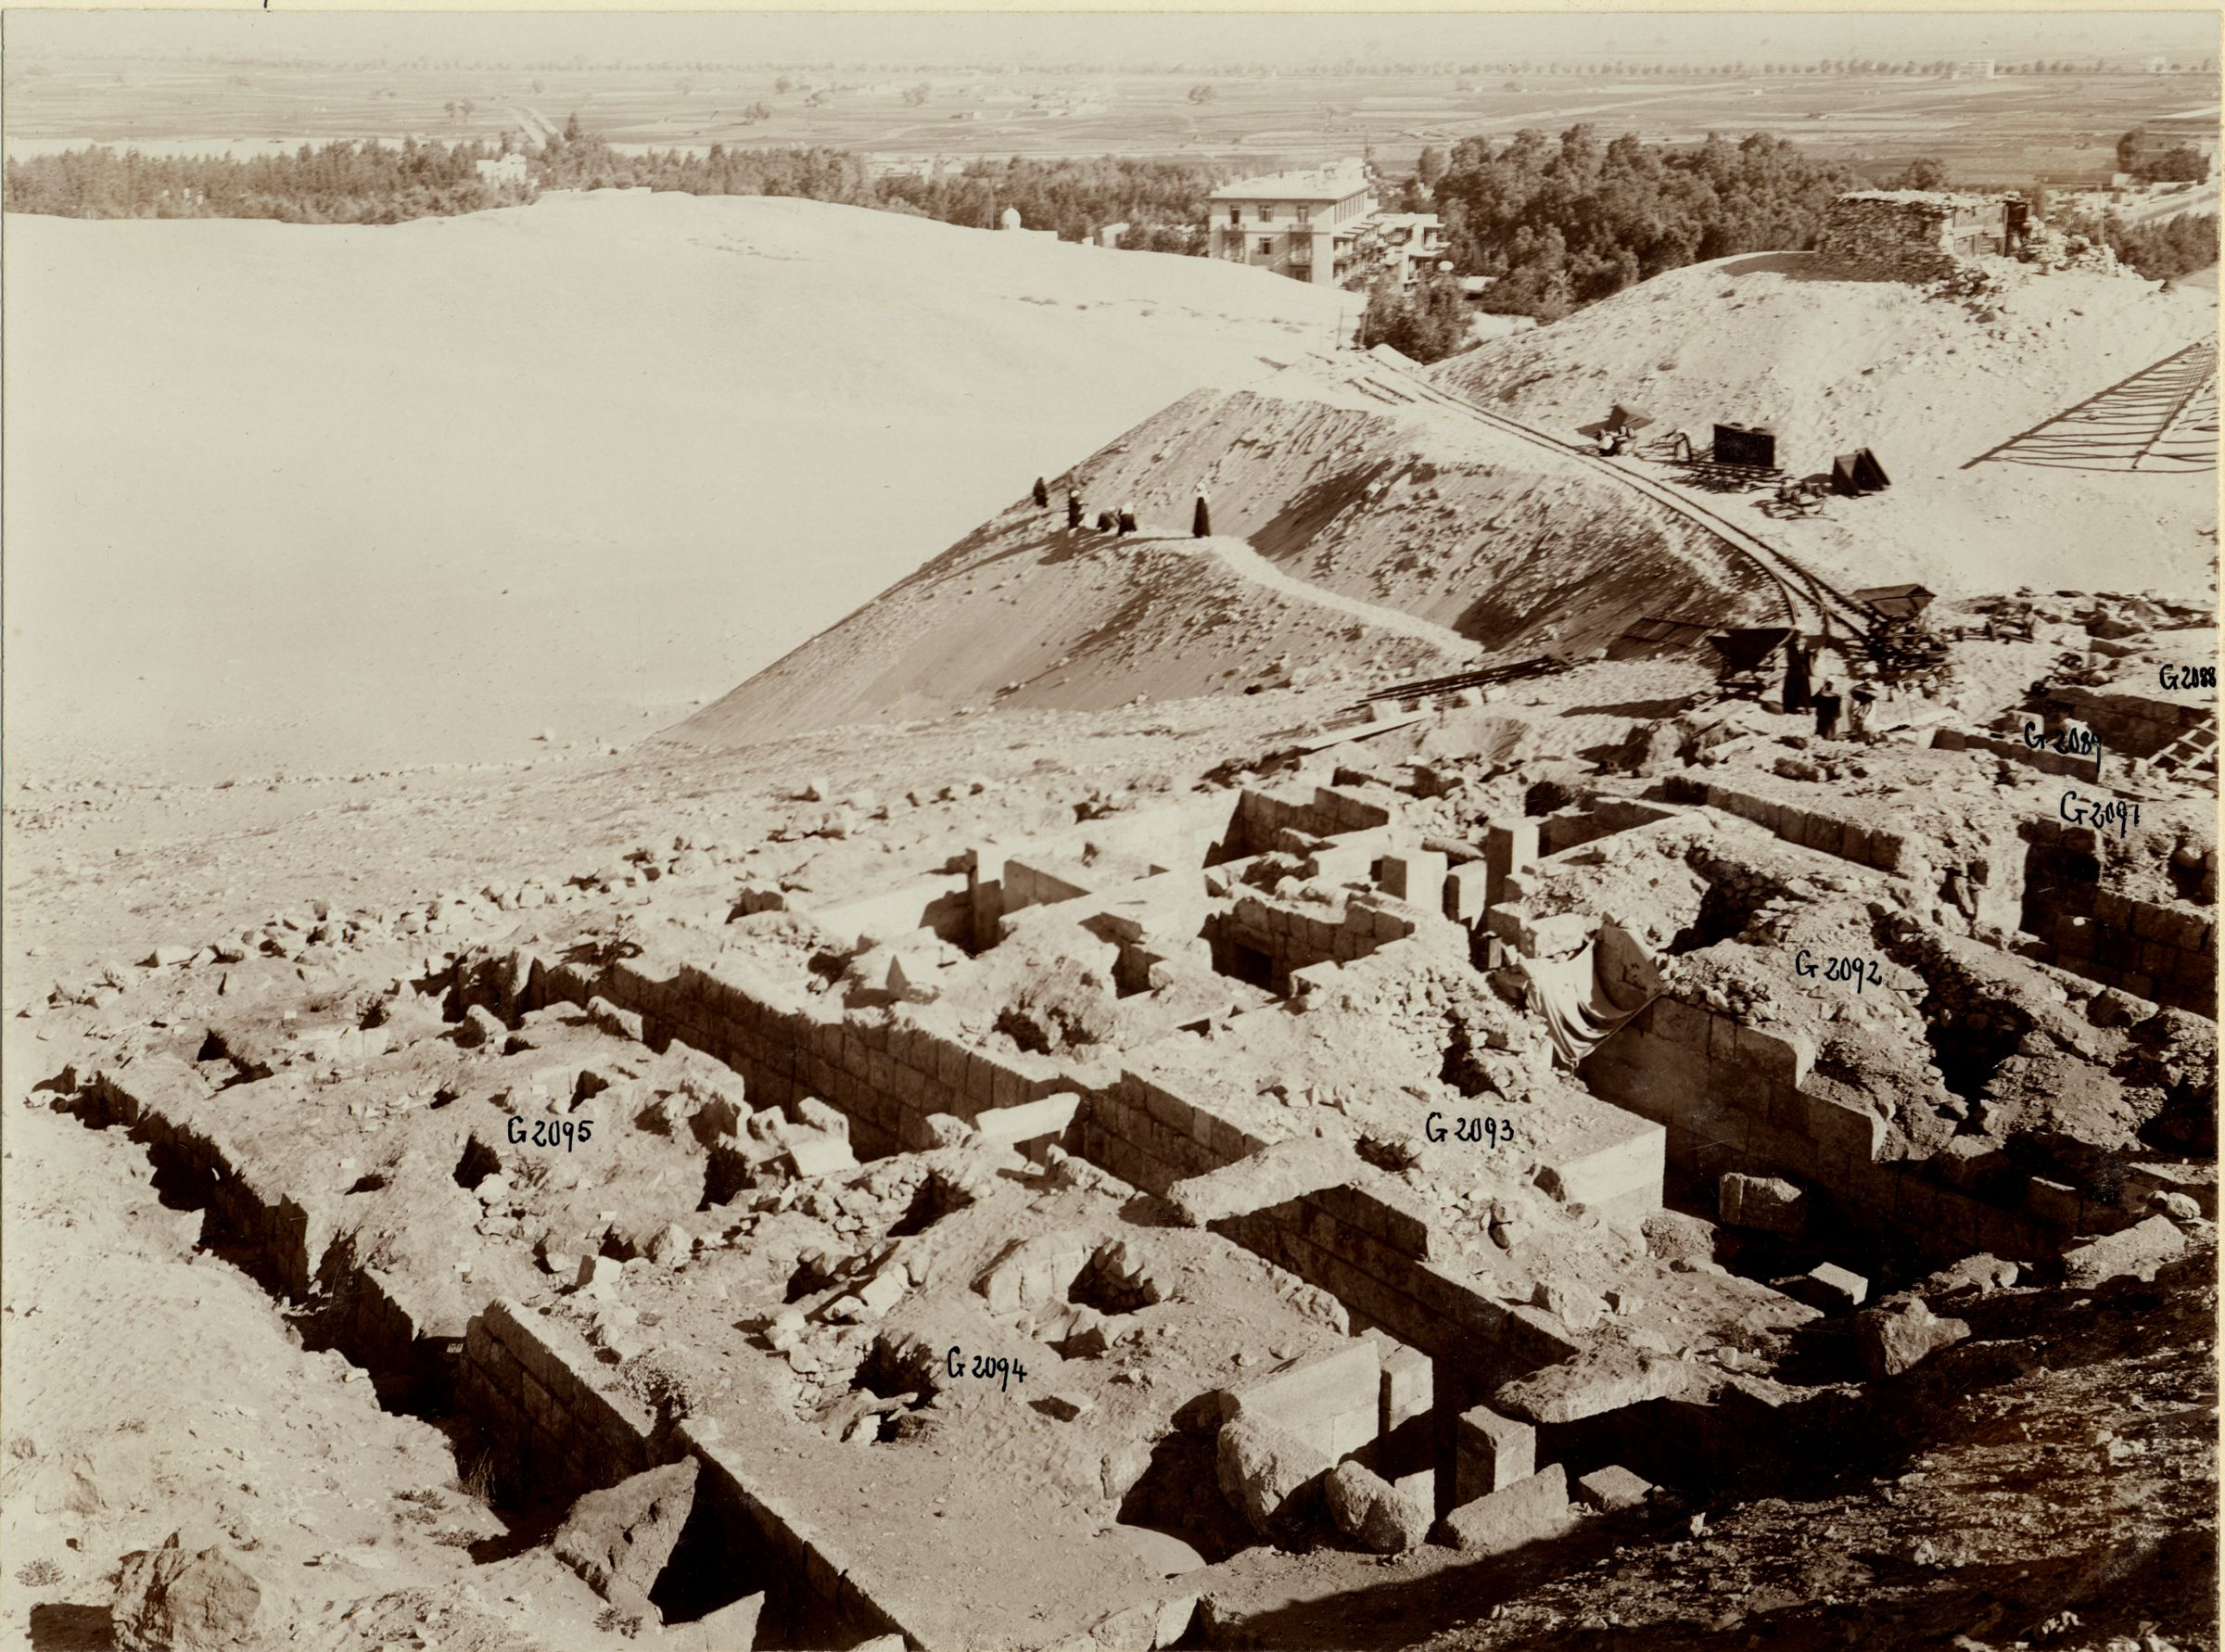 Western Cemetery: Site: Giza; View: G 2094, G 2095, G 2092+2093, G 2096, G 2091, G 2089, G 2088